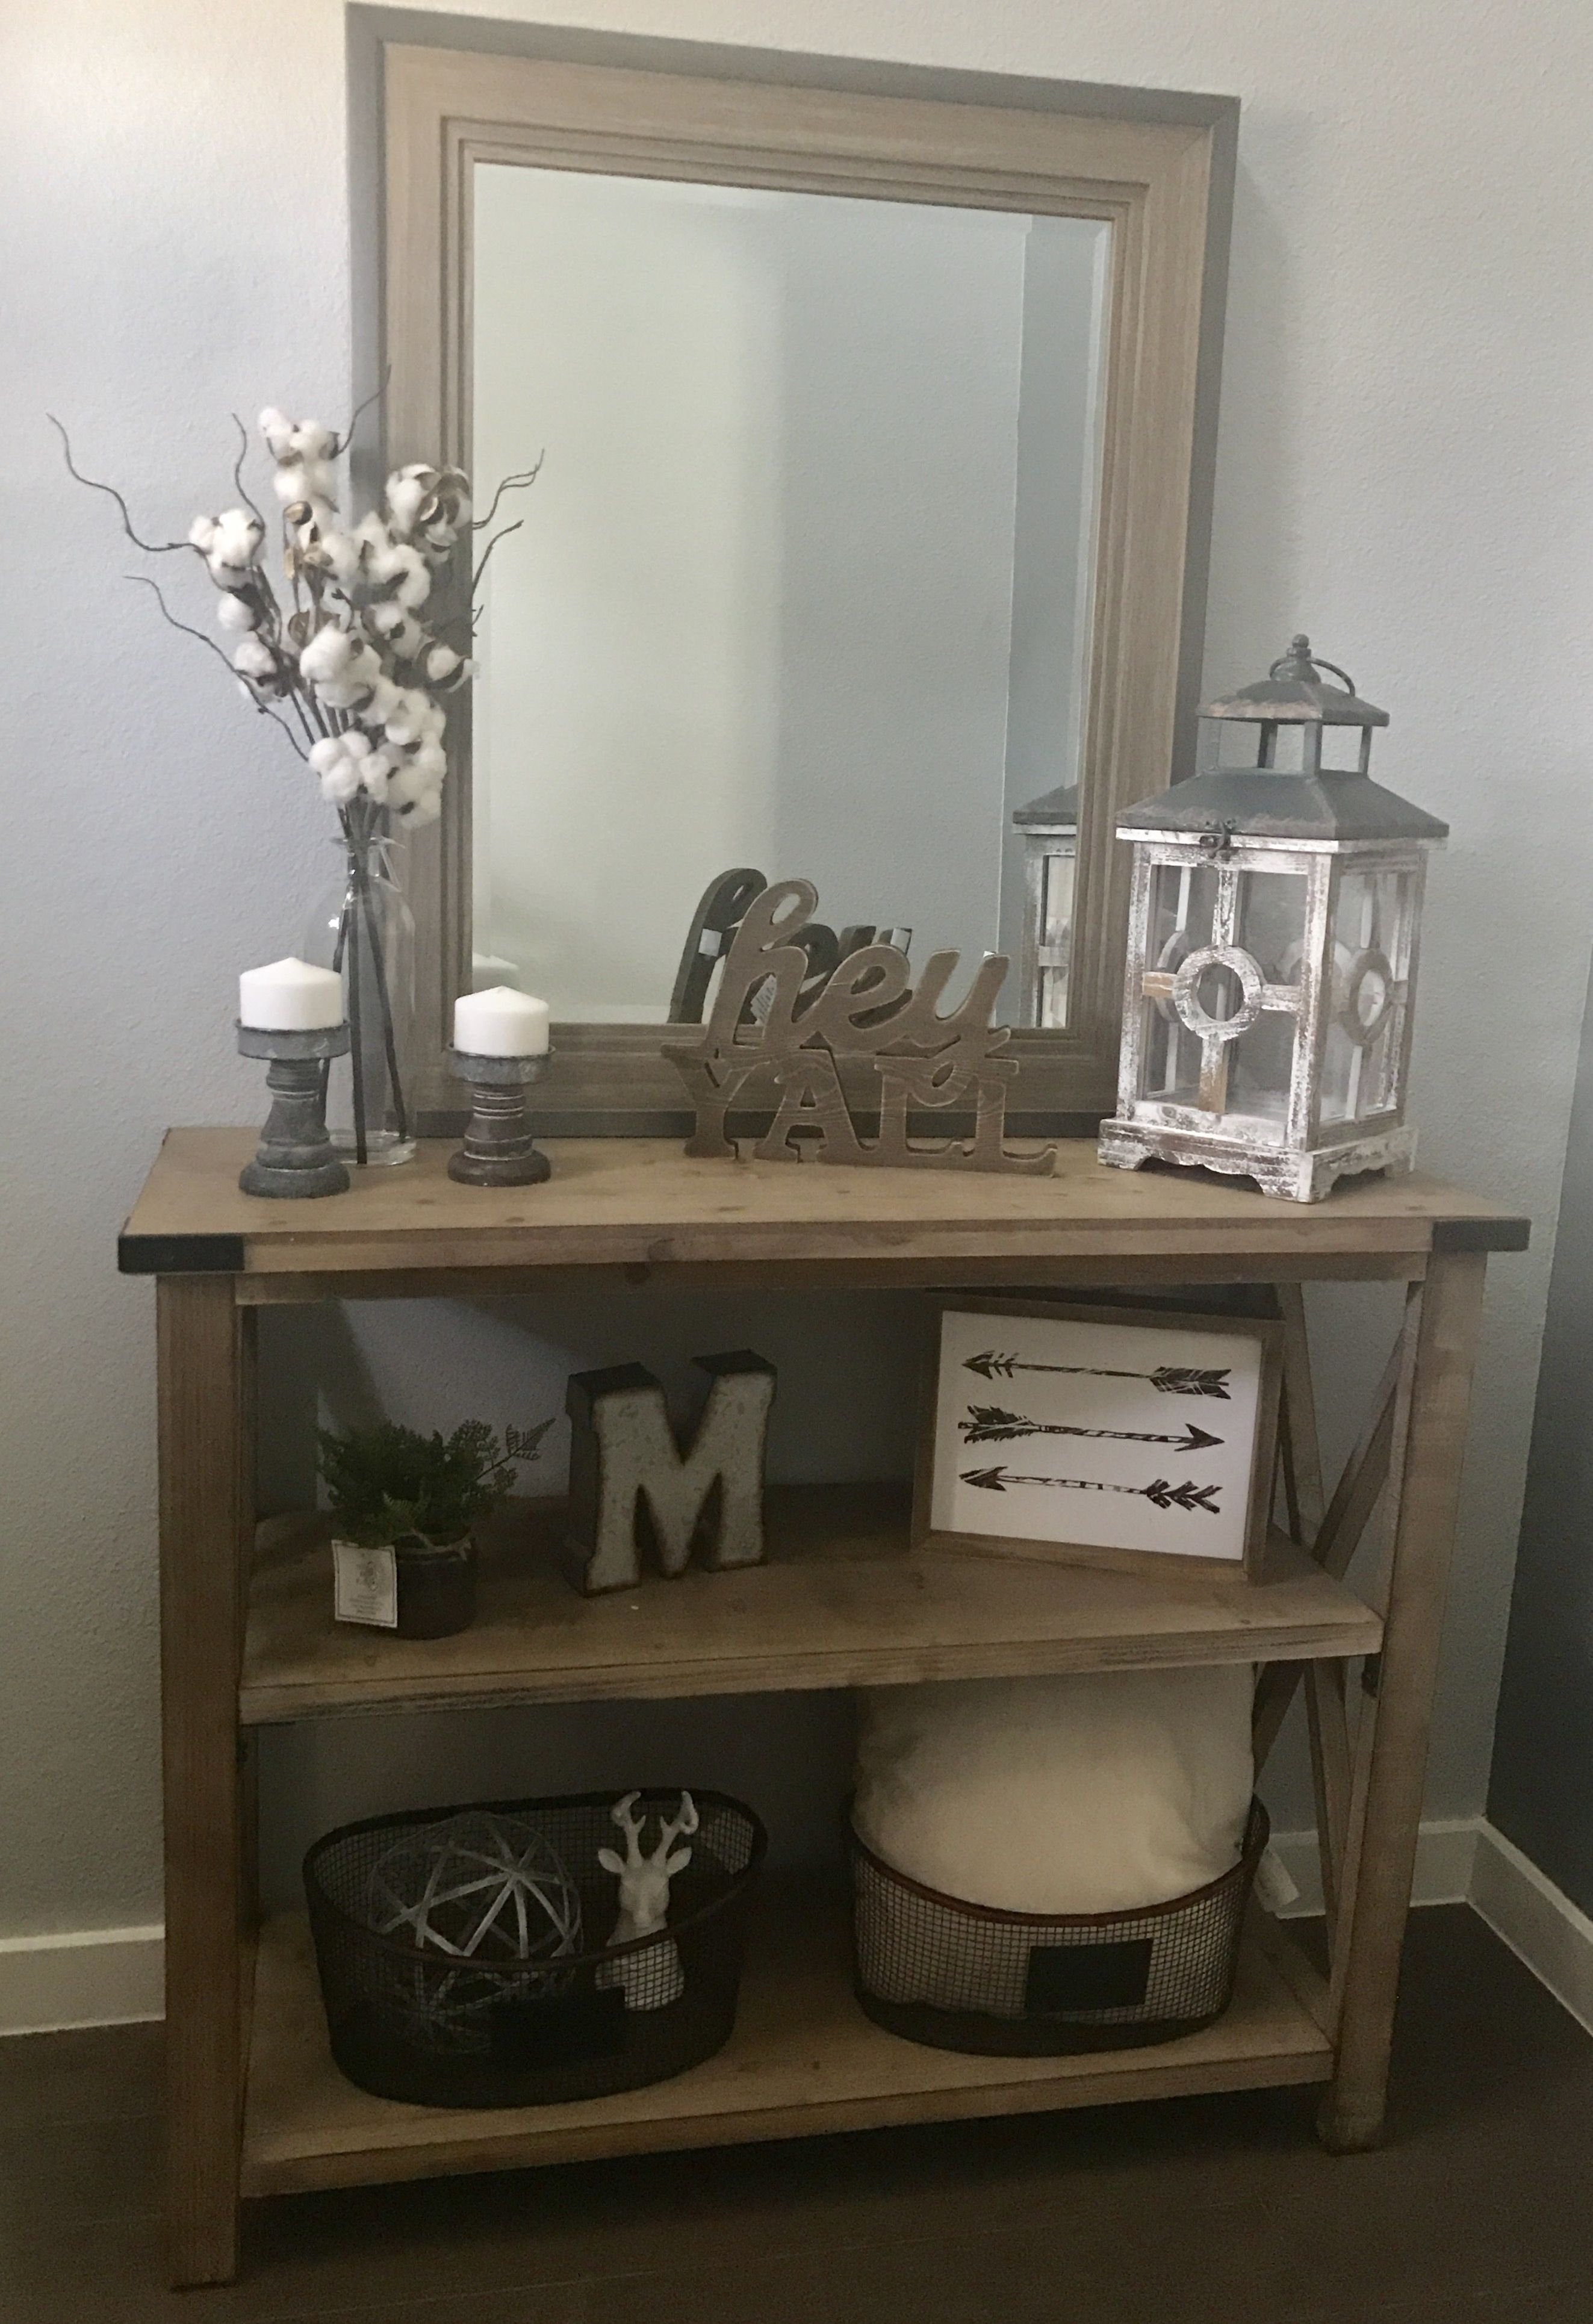 decorating a sofa console table american made sleepers new modern farmhouse entry way decor mcmillen home